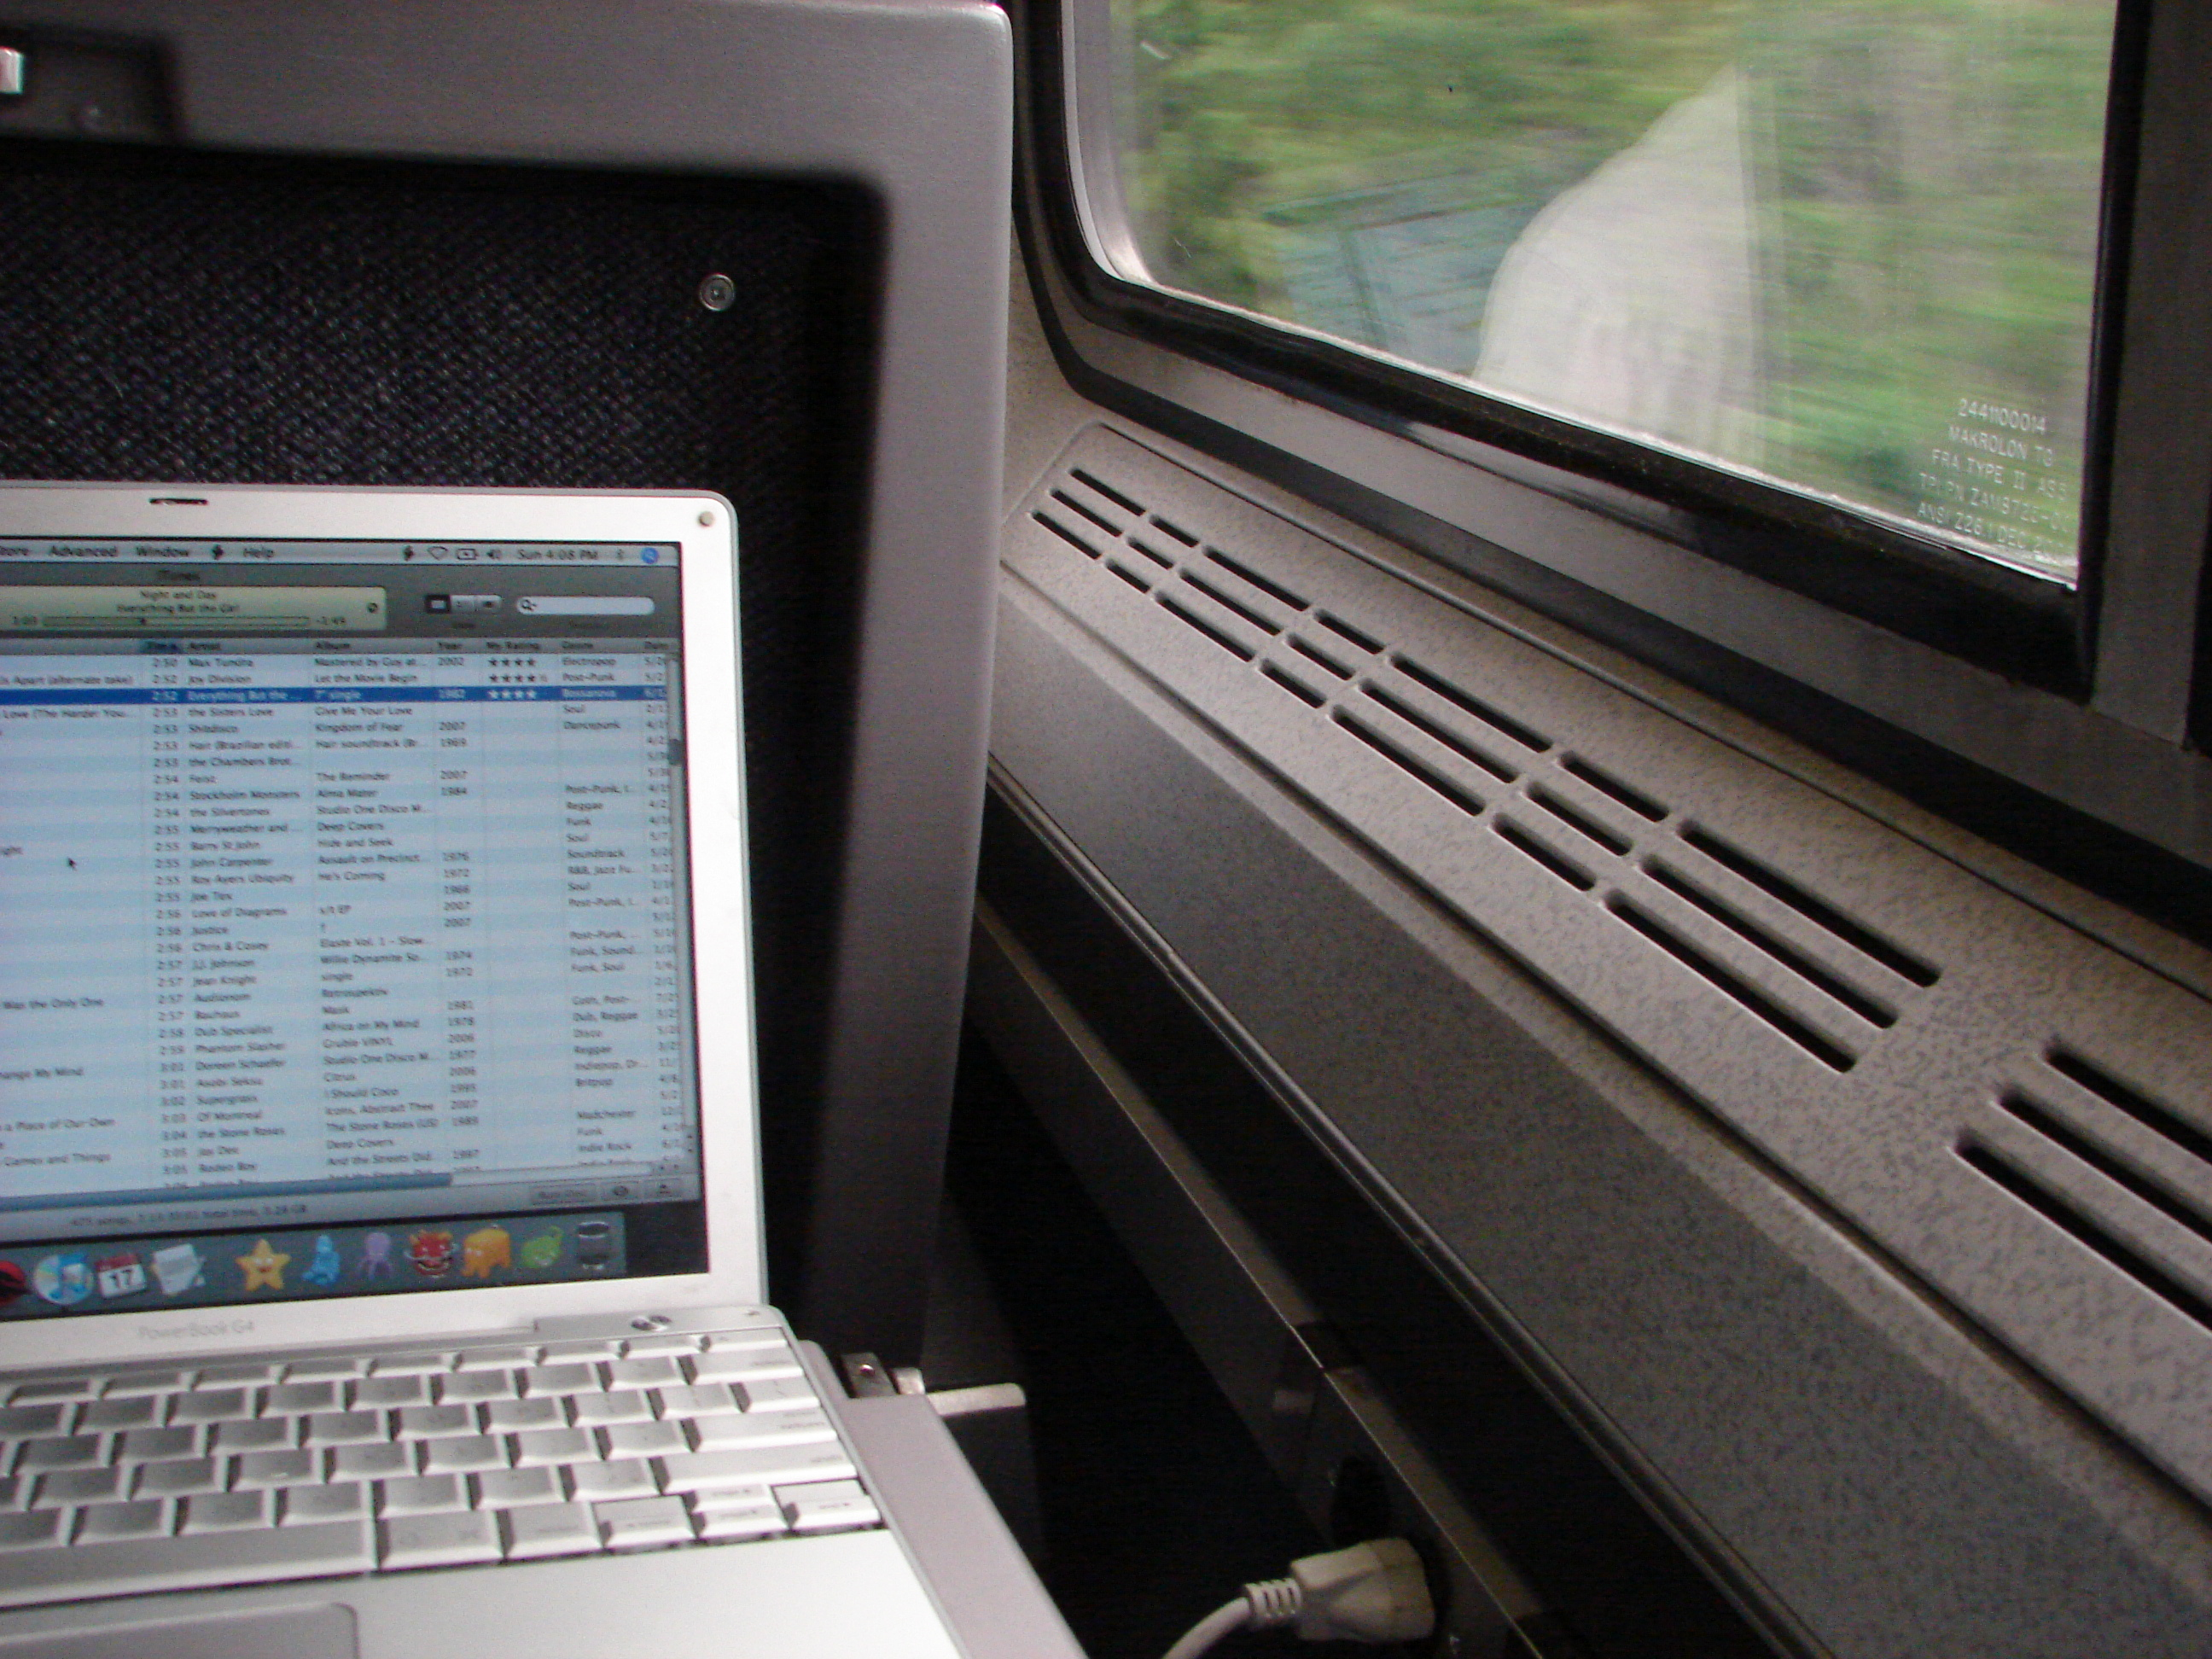 WiFi hotspot boosters let you use your laptop on the train